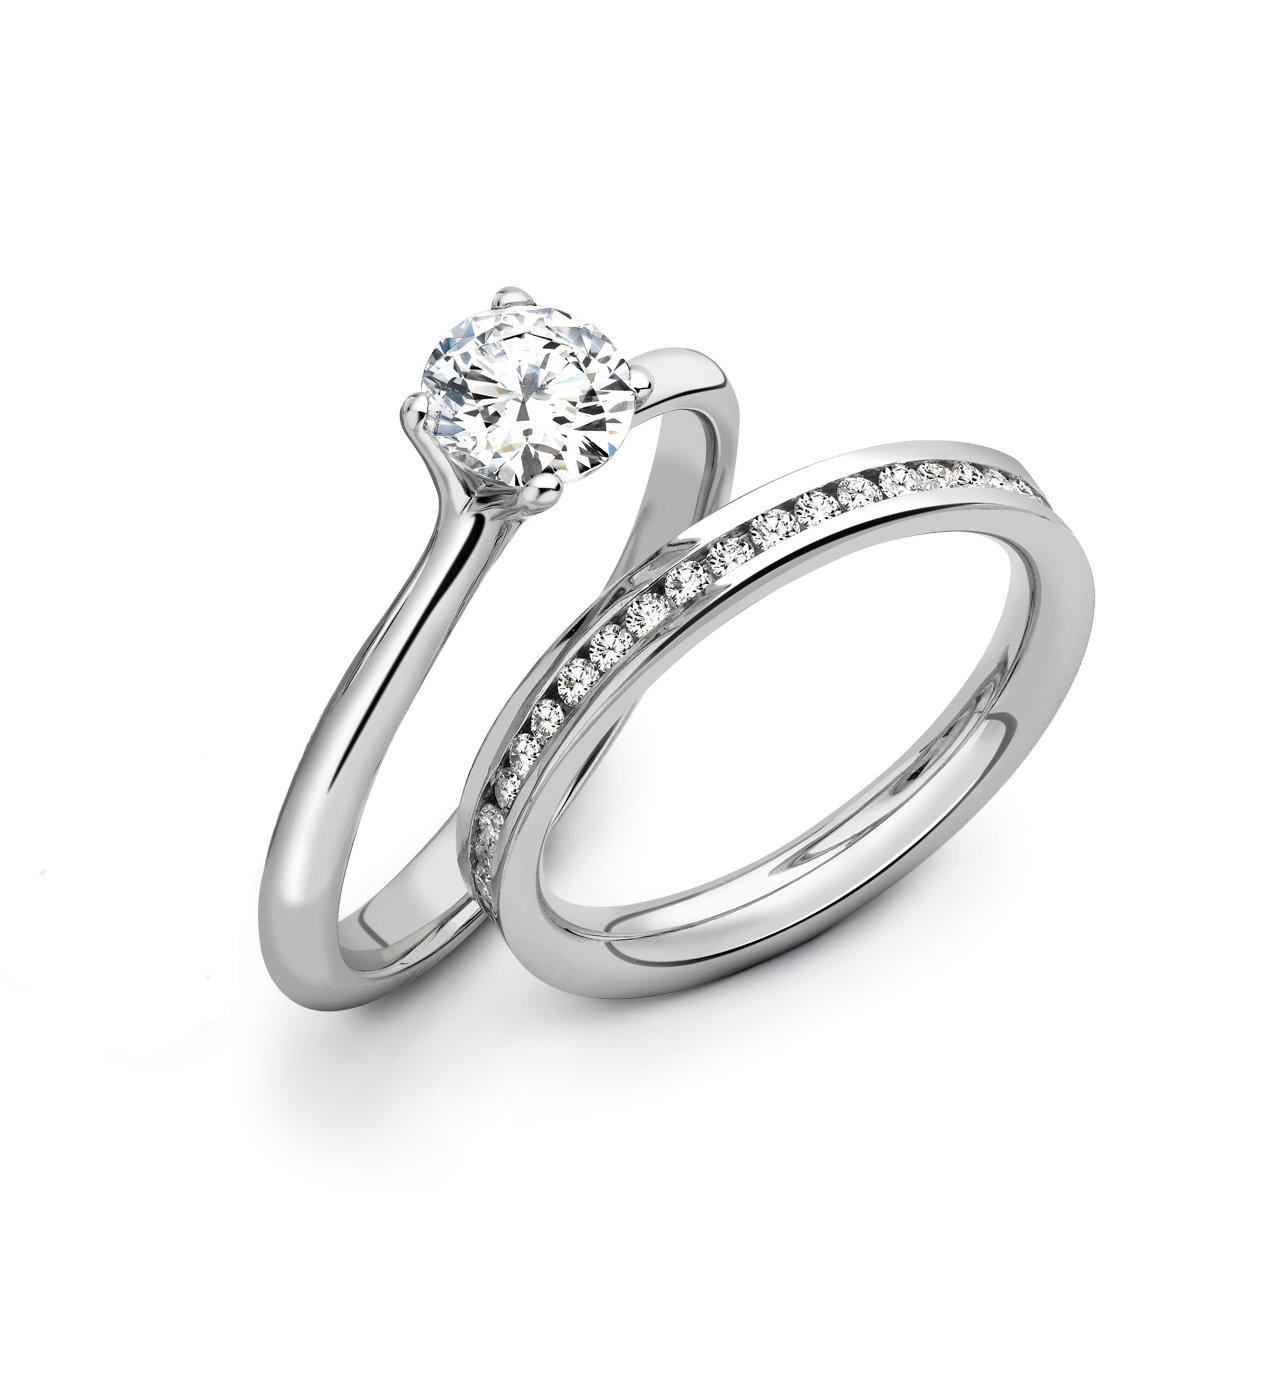 The Bette engagement ring is a sohisticated option for short fingers.